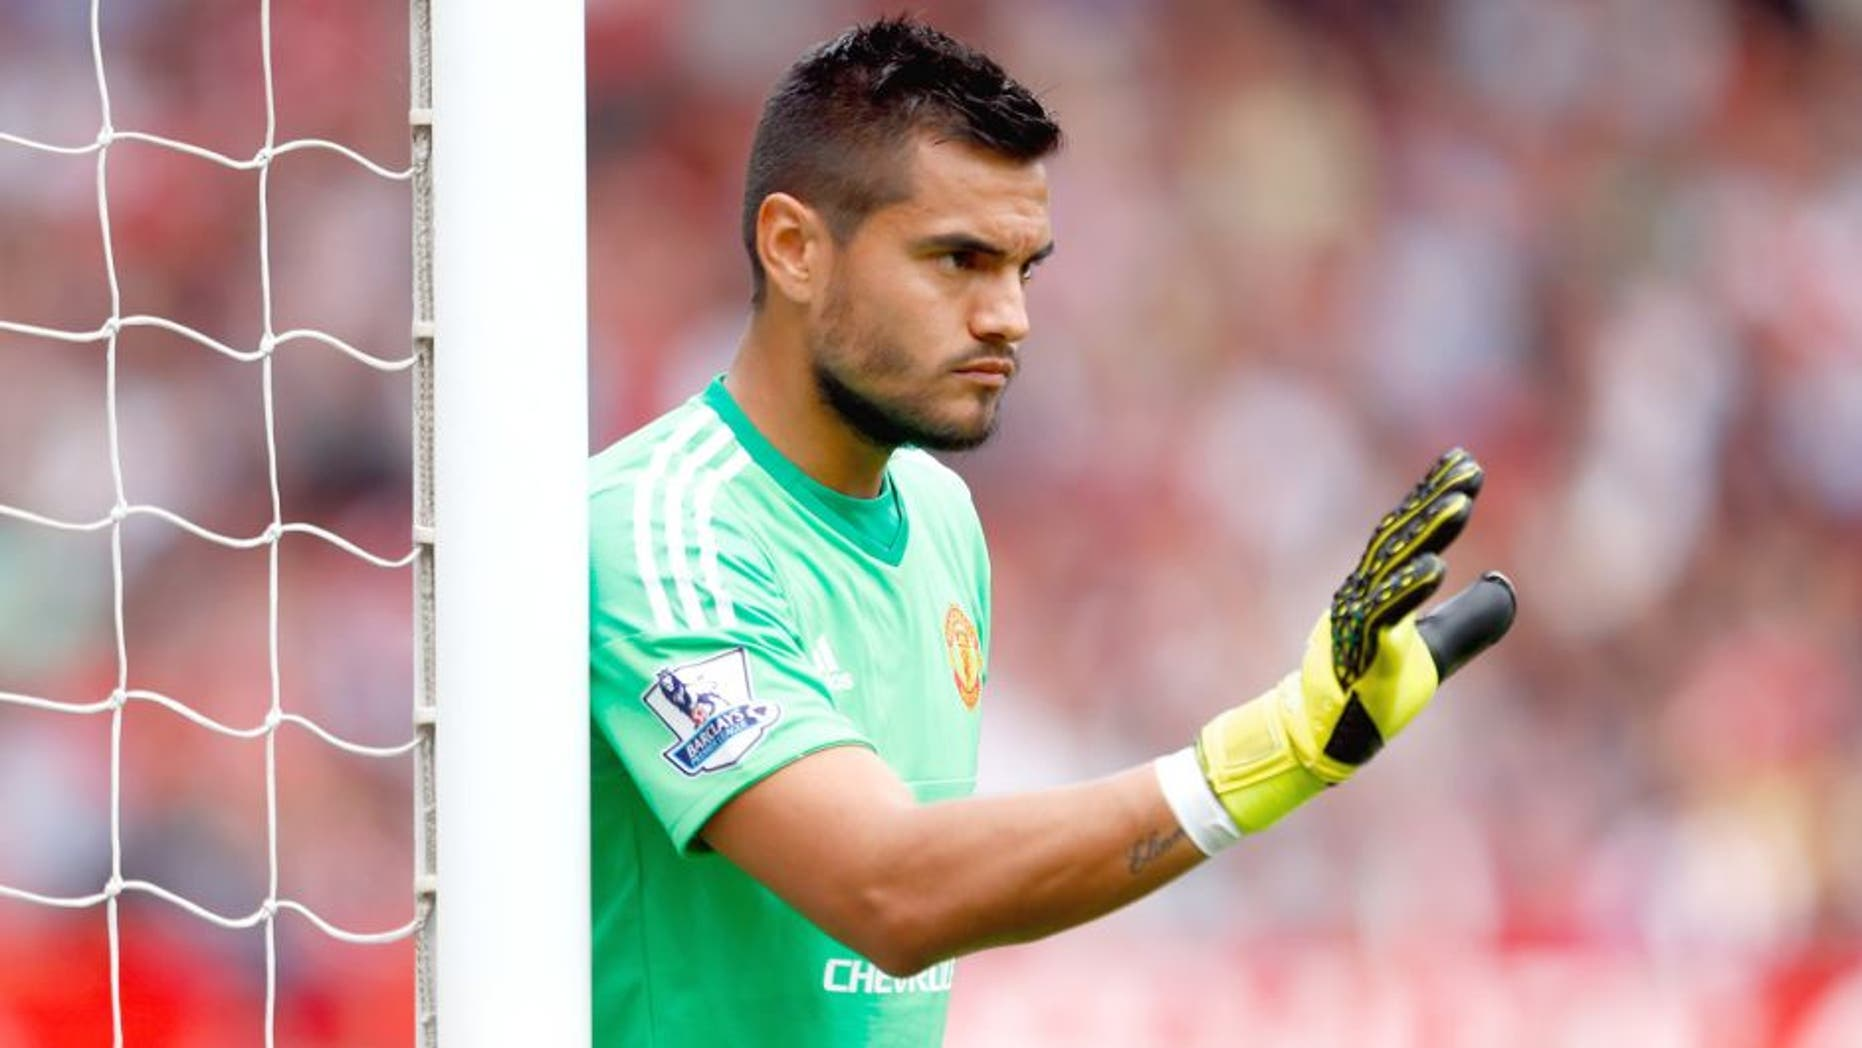 MANCHESTER, ENGLAND - AUGUST 22: Sergio Romero of Manchester United in action during the Barclays Premier League match between Manchester United and Newcastle United at Old Trafford on August 22, 2015 in Manchester, United Kingdom. (Photo by Julian Finney/Getty Images)